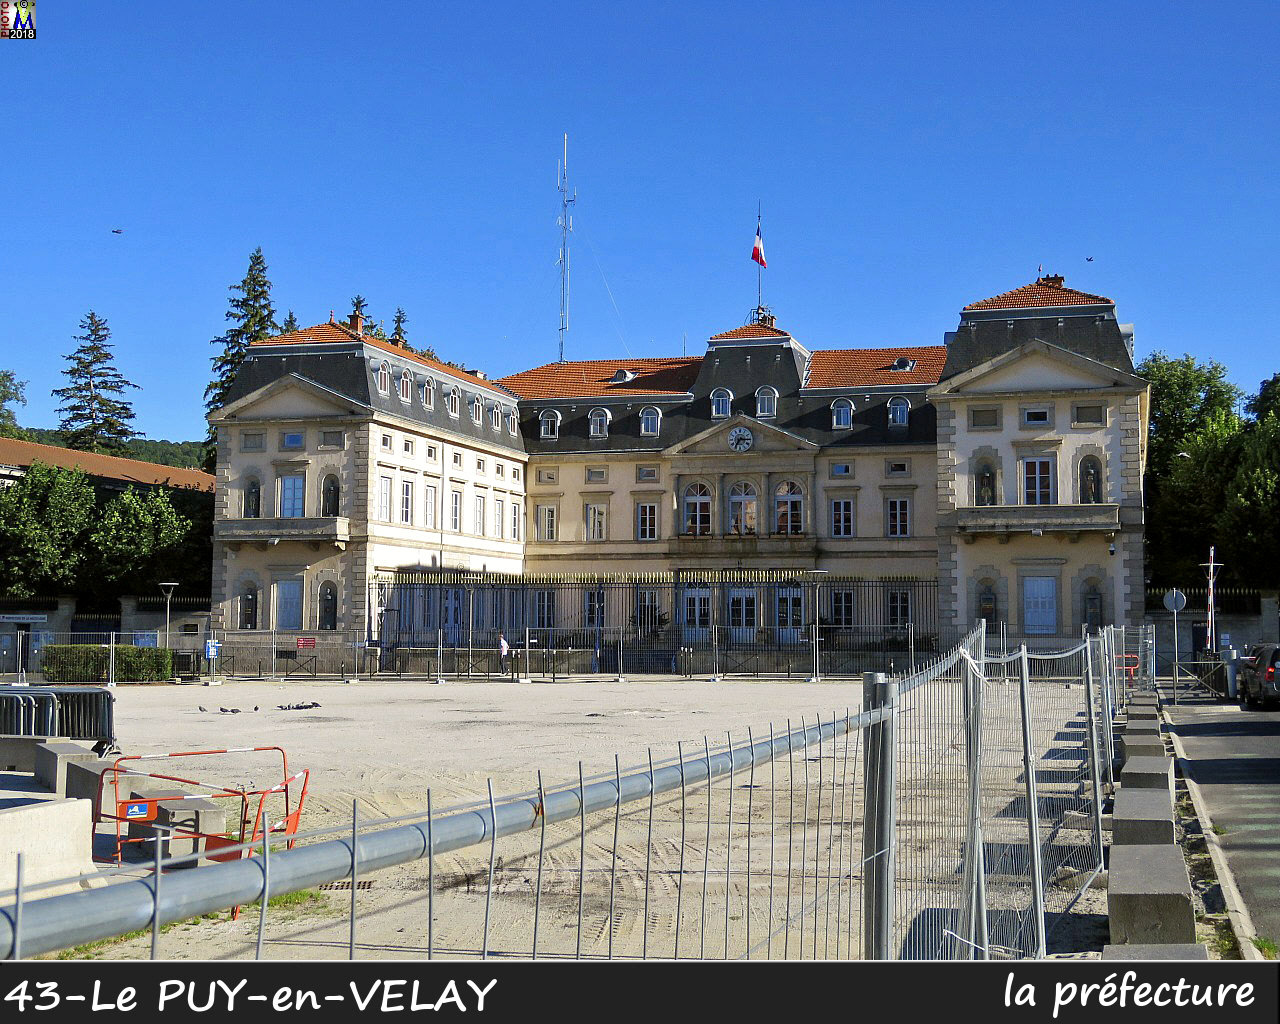 43PUY-EN-VELAY_prefecture_100.jpg